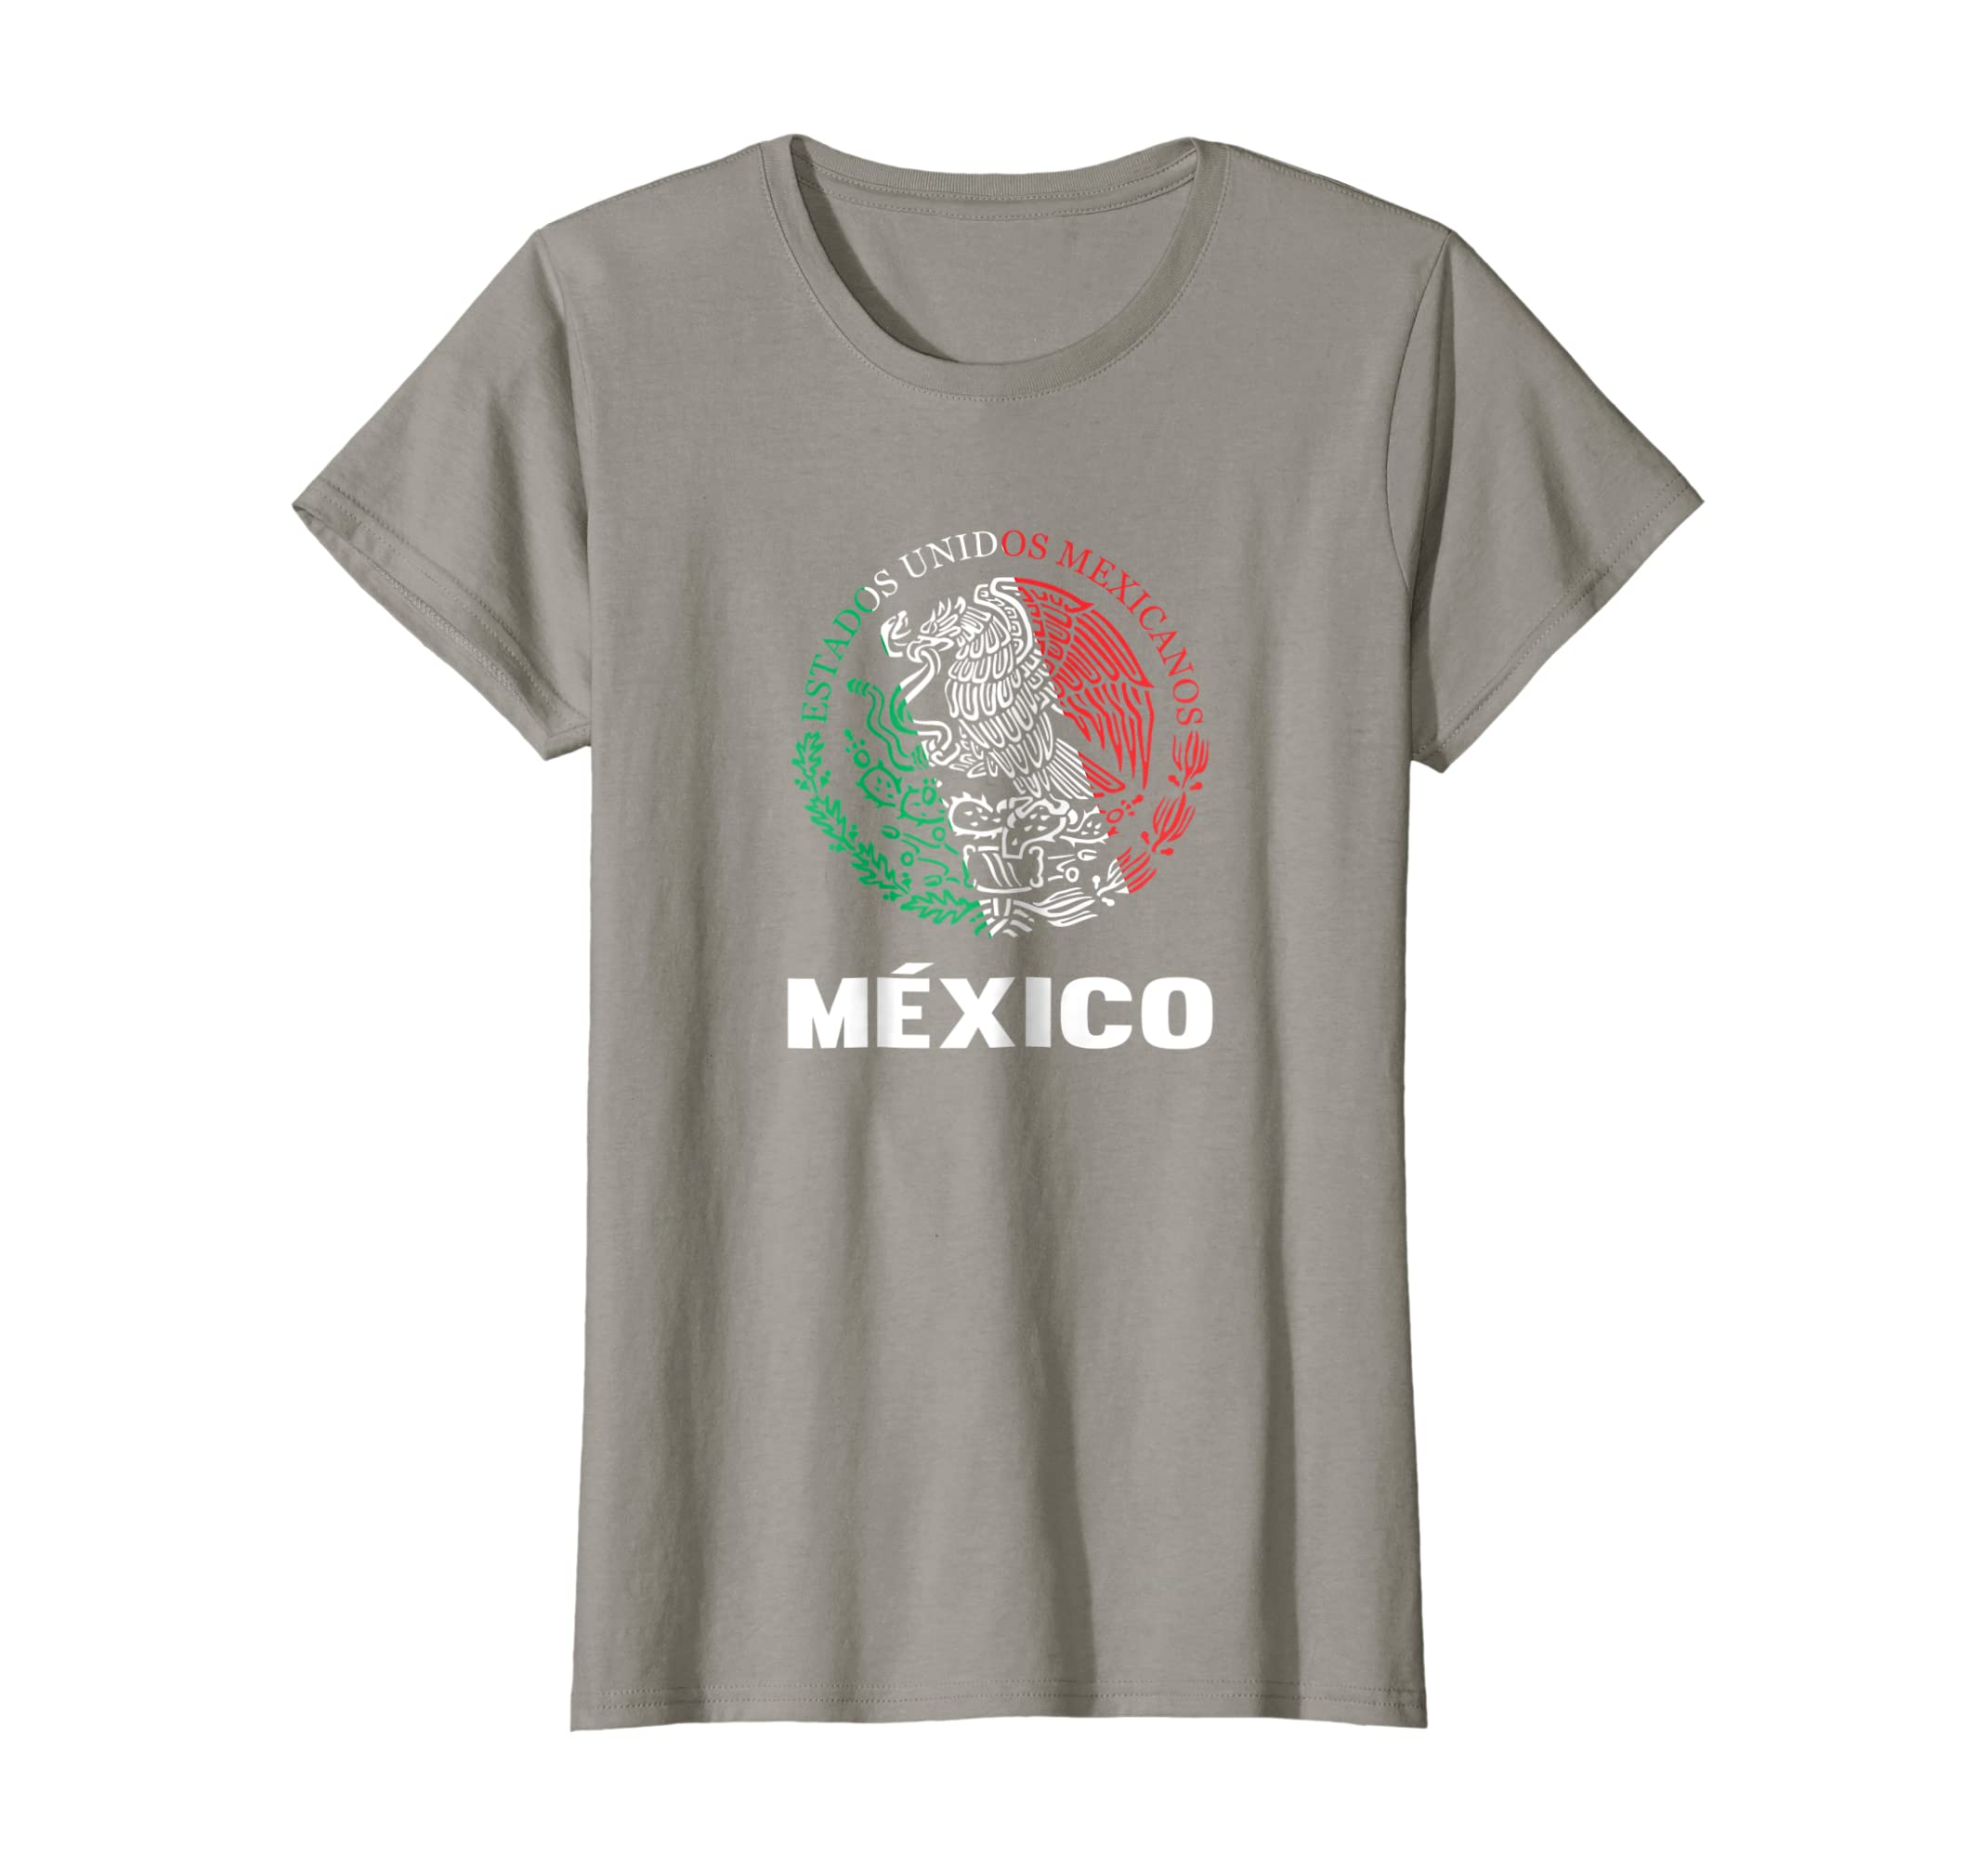 Amazon.com: Mexico Escudo Nacional Tshirt - Orgullo y Raices Mexicanas: Clothing